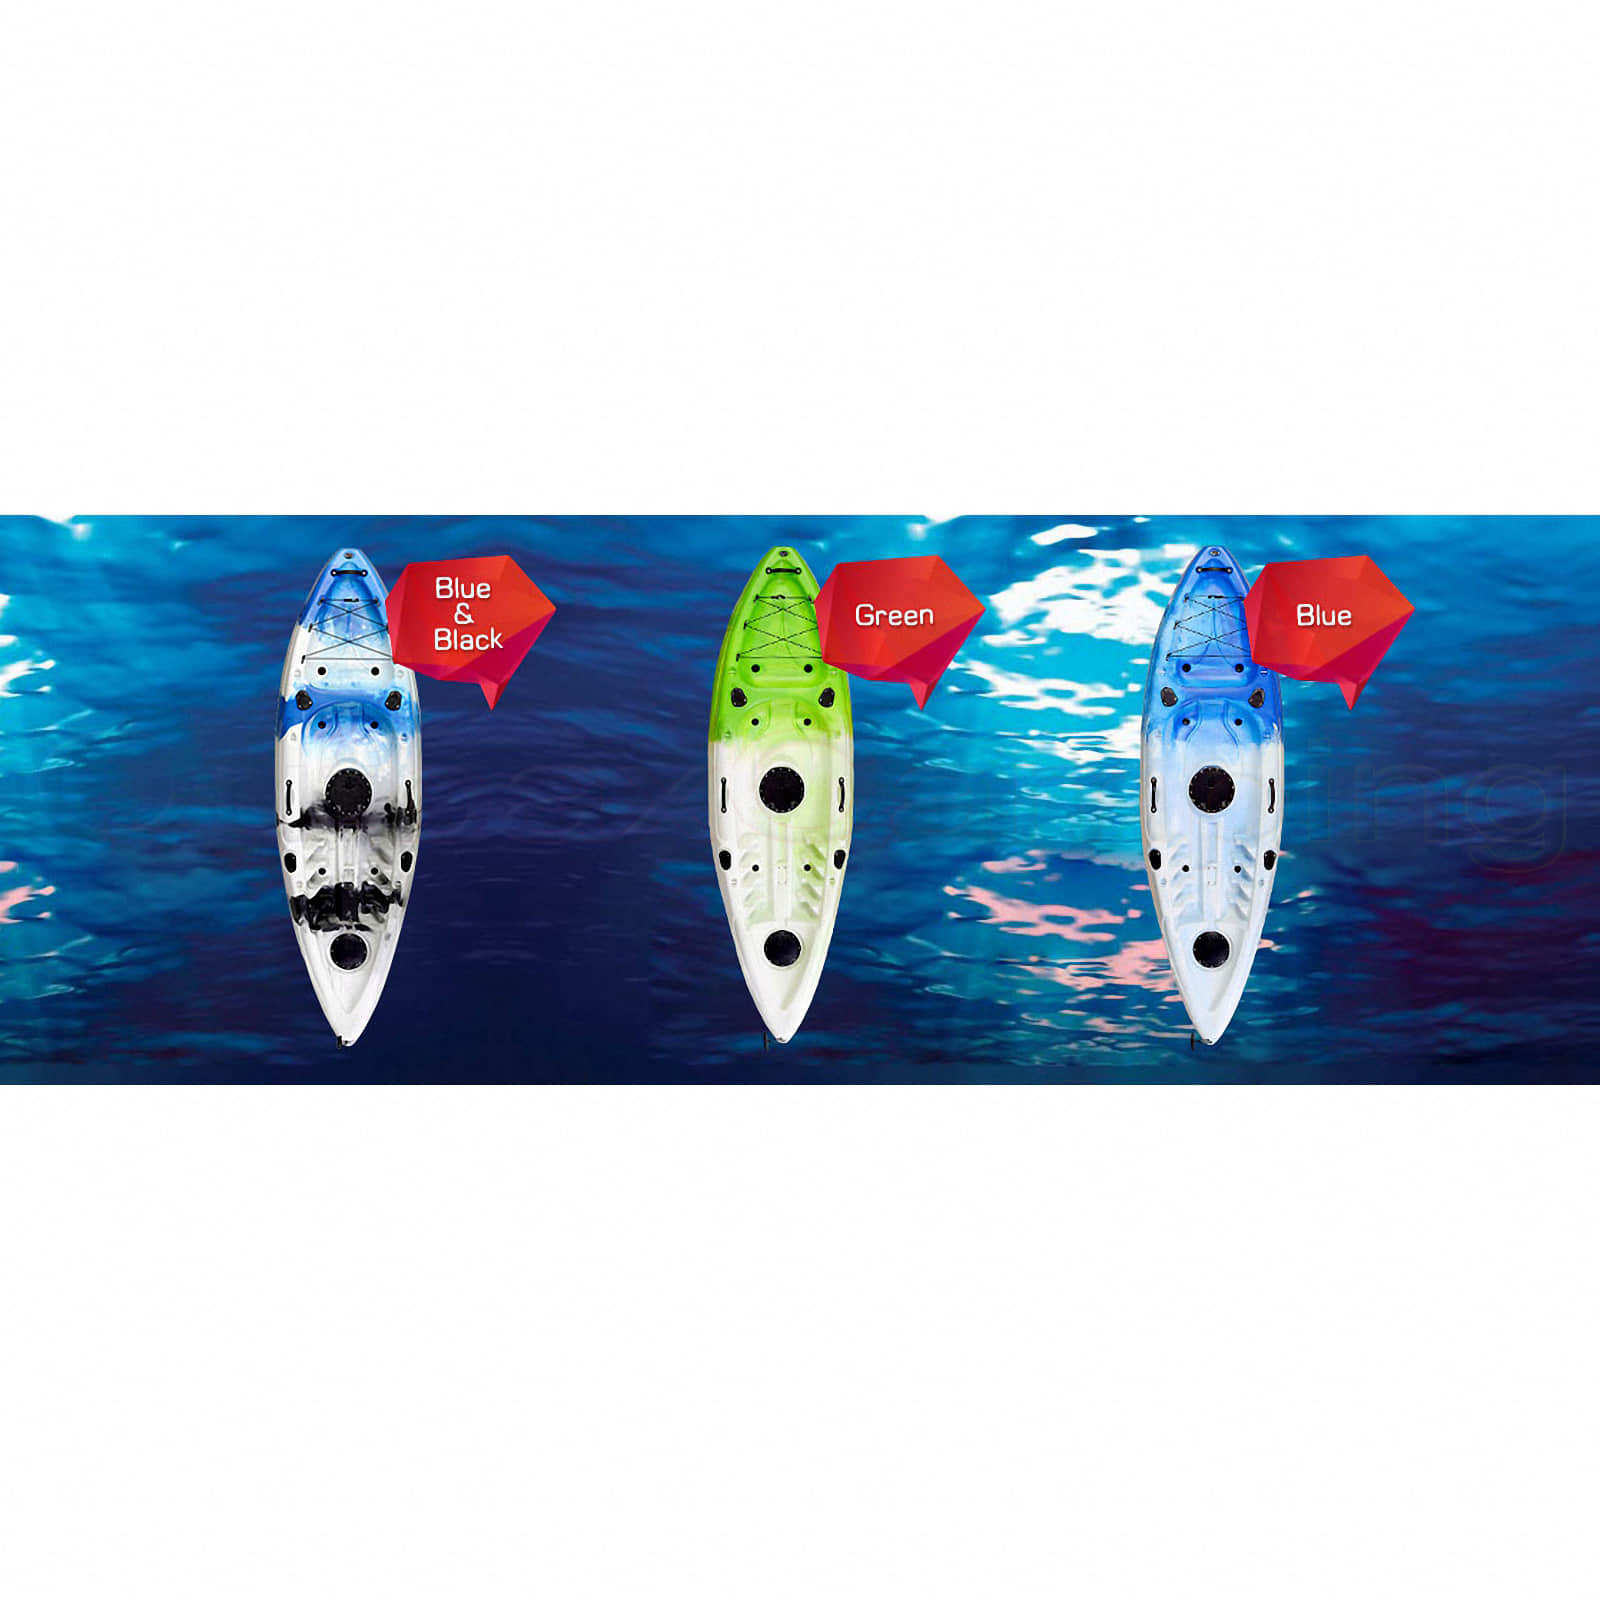 Single Fishing Kayak Sit On 5 Rod Holders Ocean Sea Canoe Camo Blue White Paddle